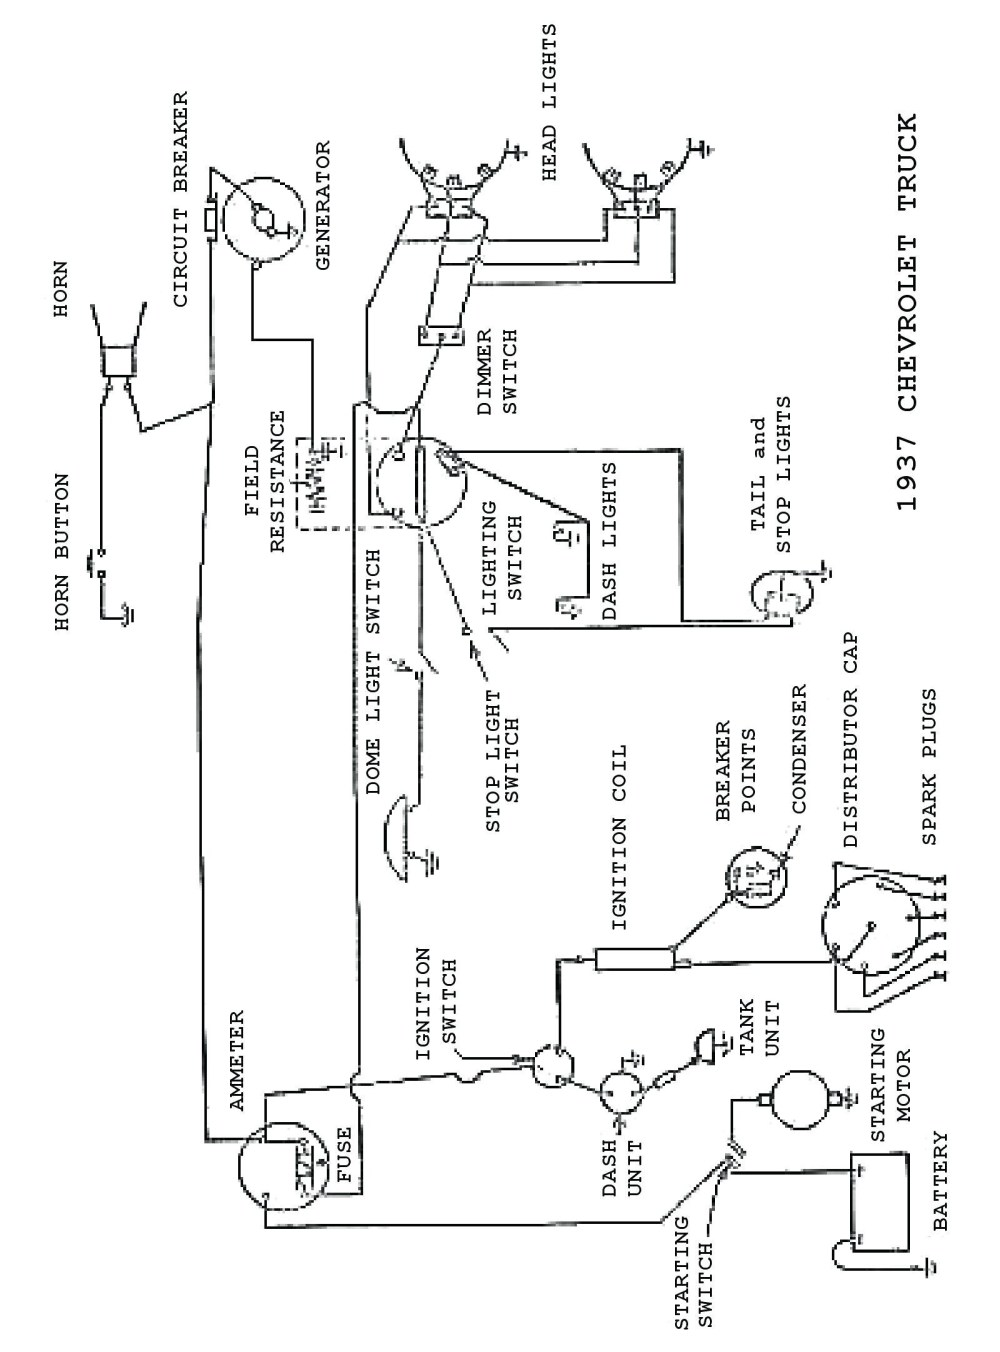 medium resolution of john deere 4020 electrical diagram wiring diagram expertjd 4020 wiring harness schematic wiring diagram fascinating john